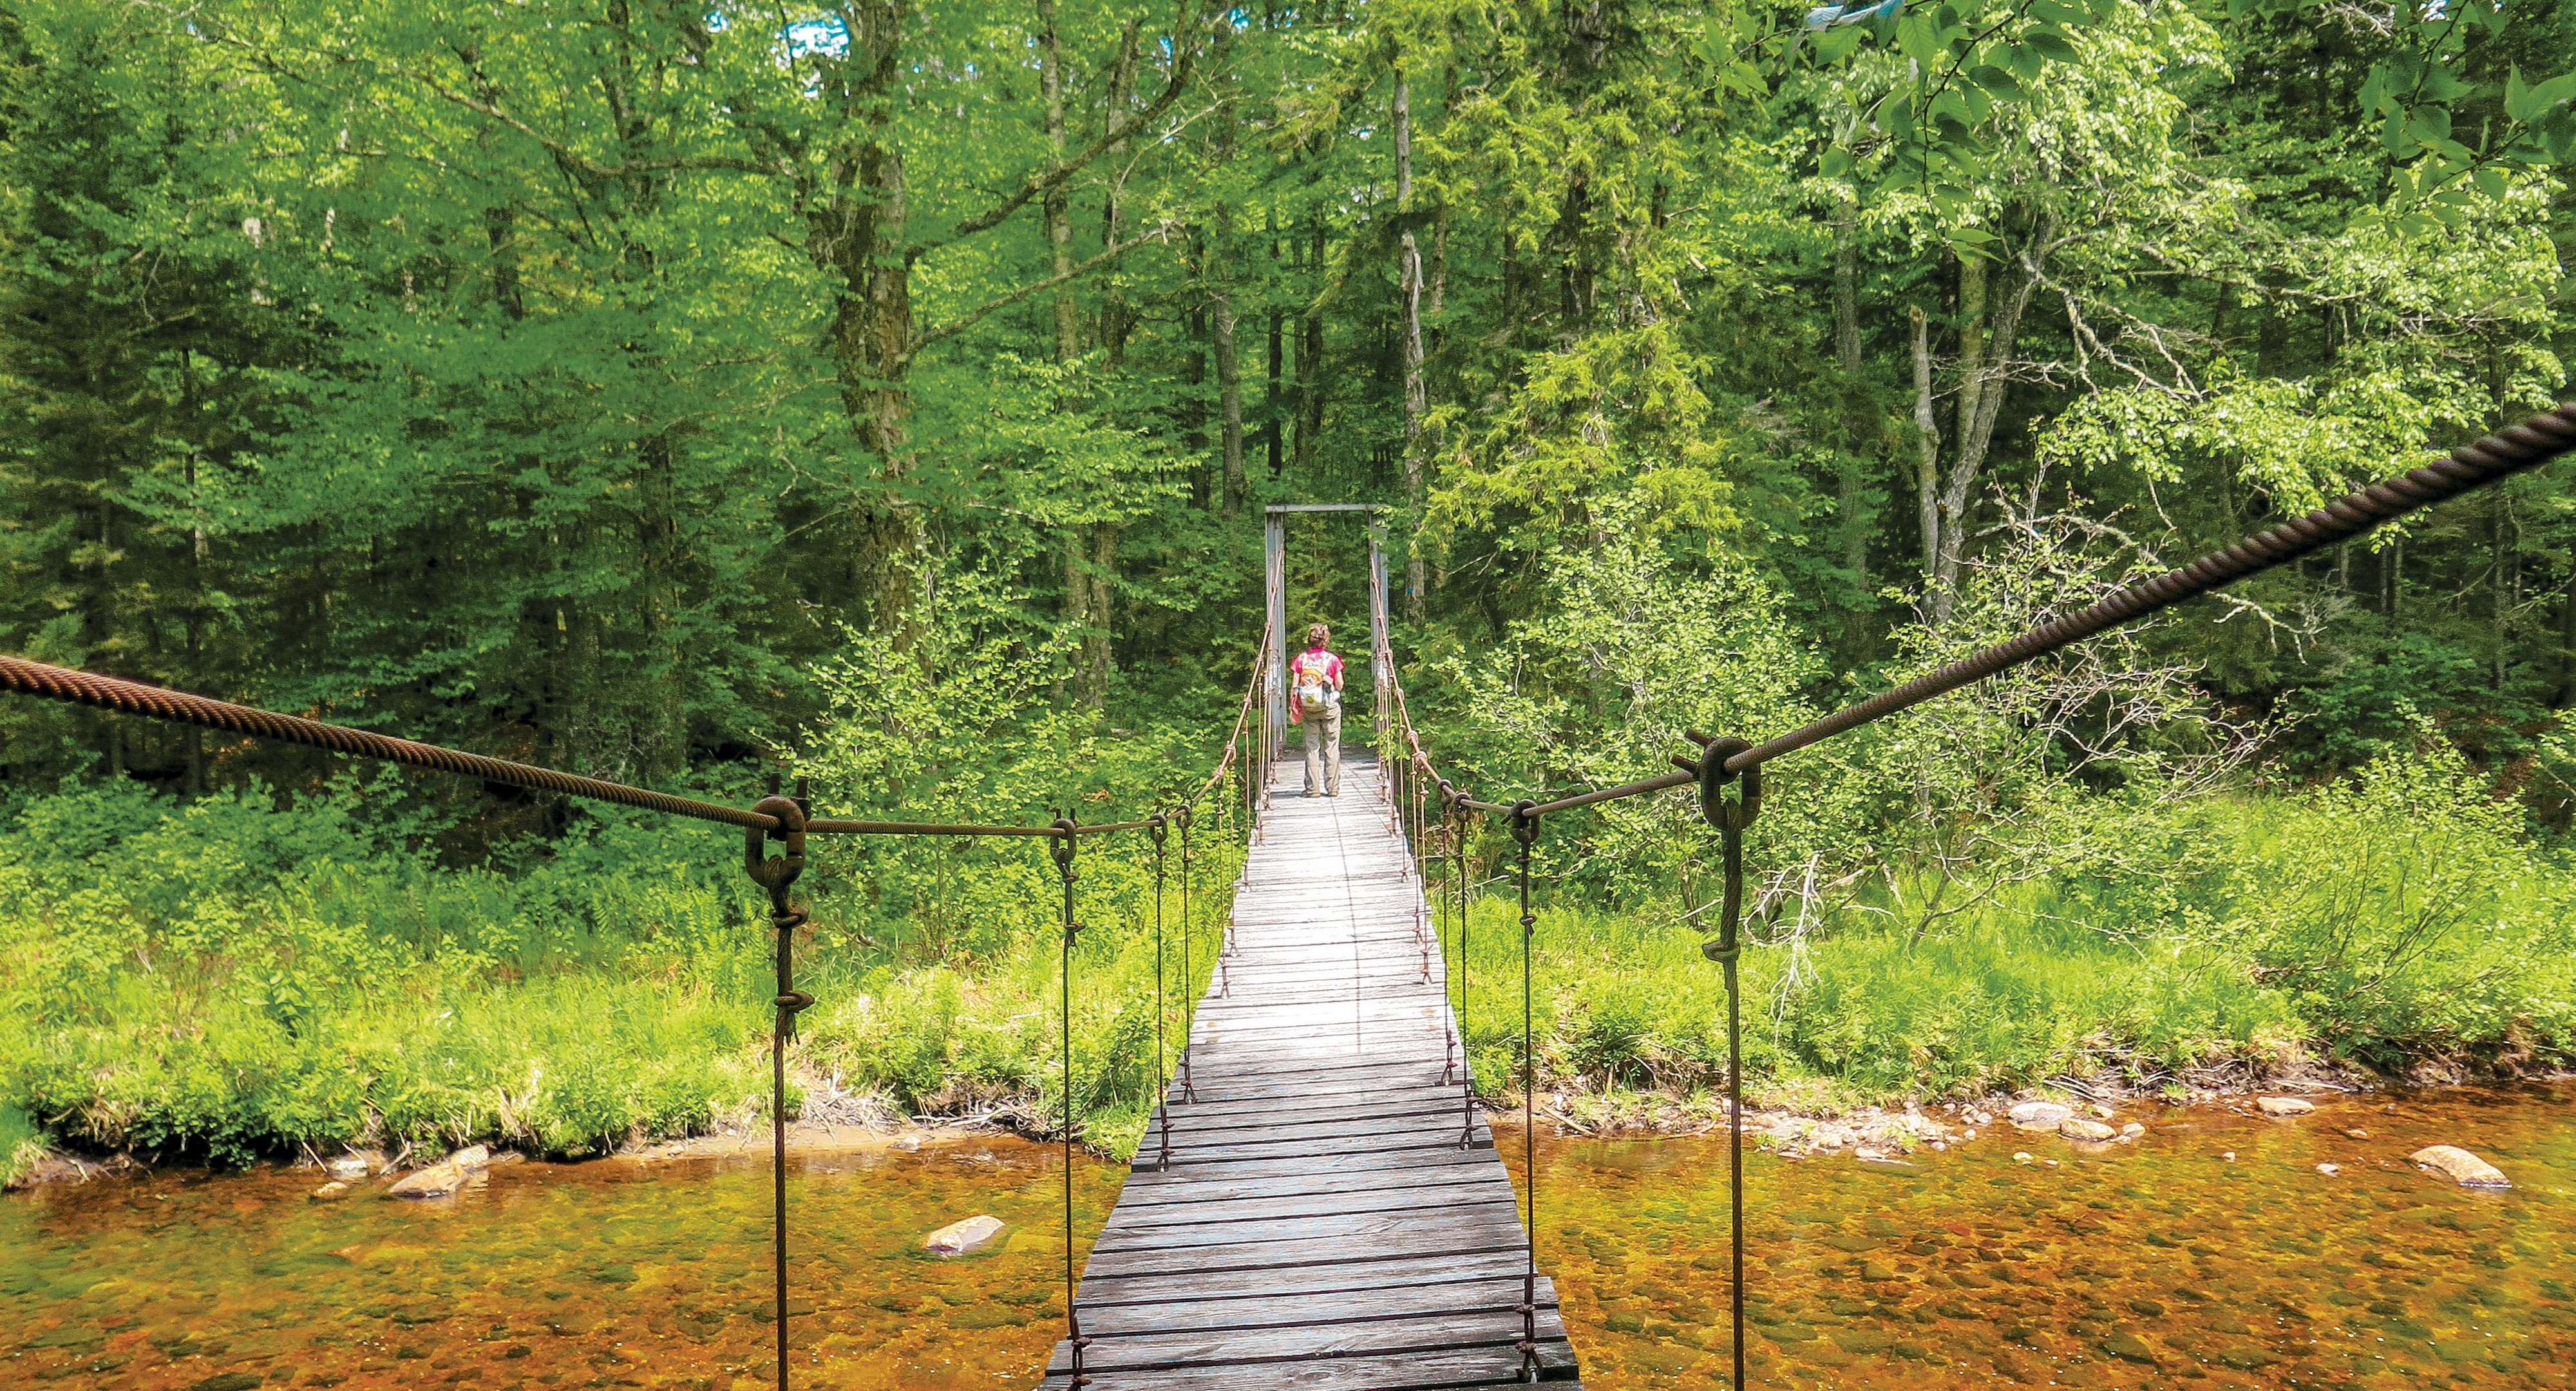 A woman has almost finished crossing a weathered wooden suspension bridge over a body of water